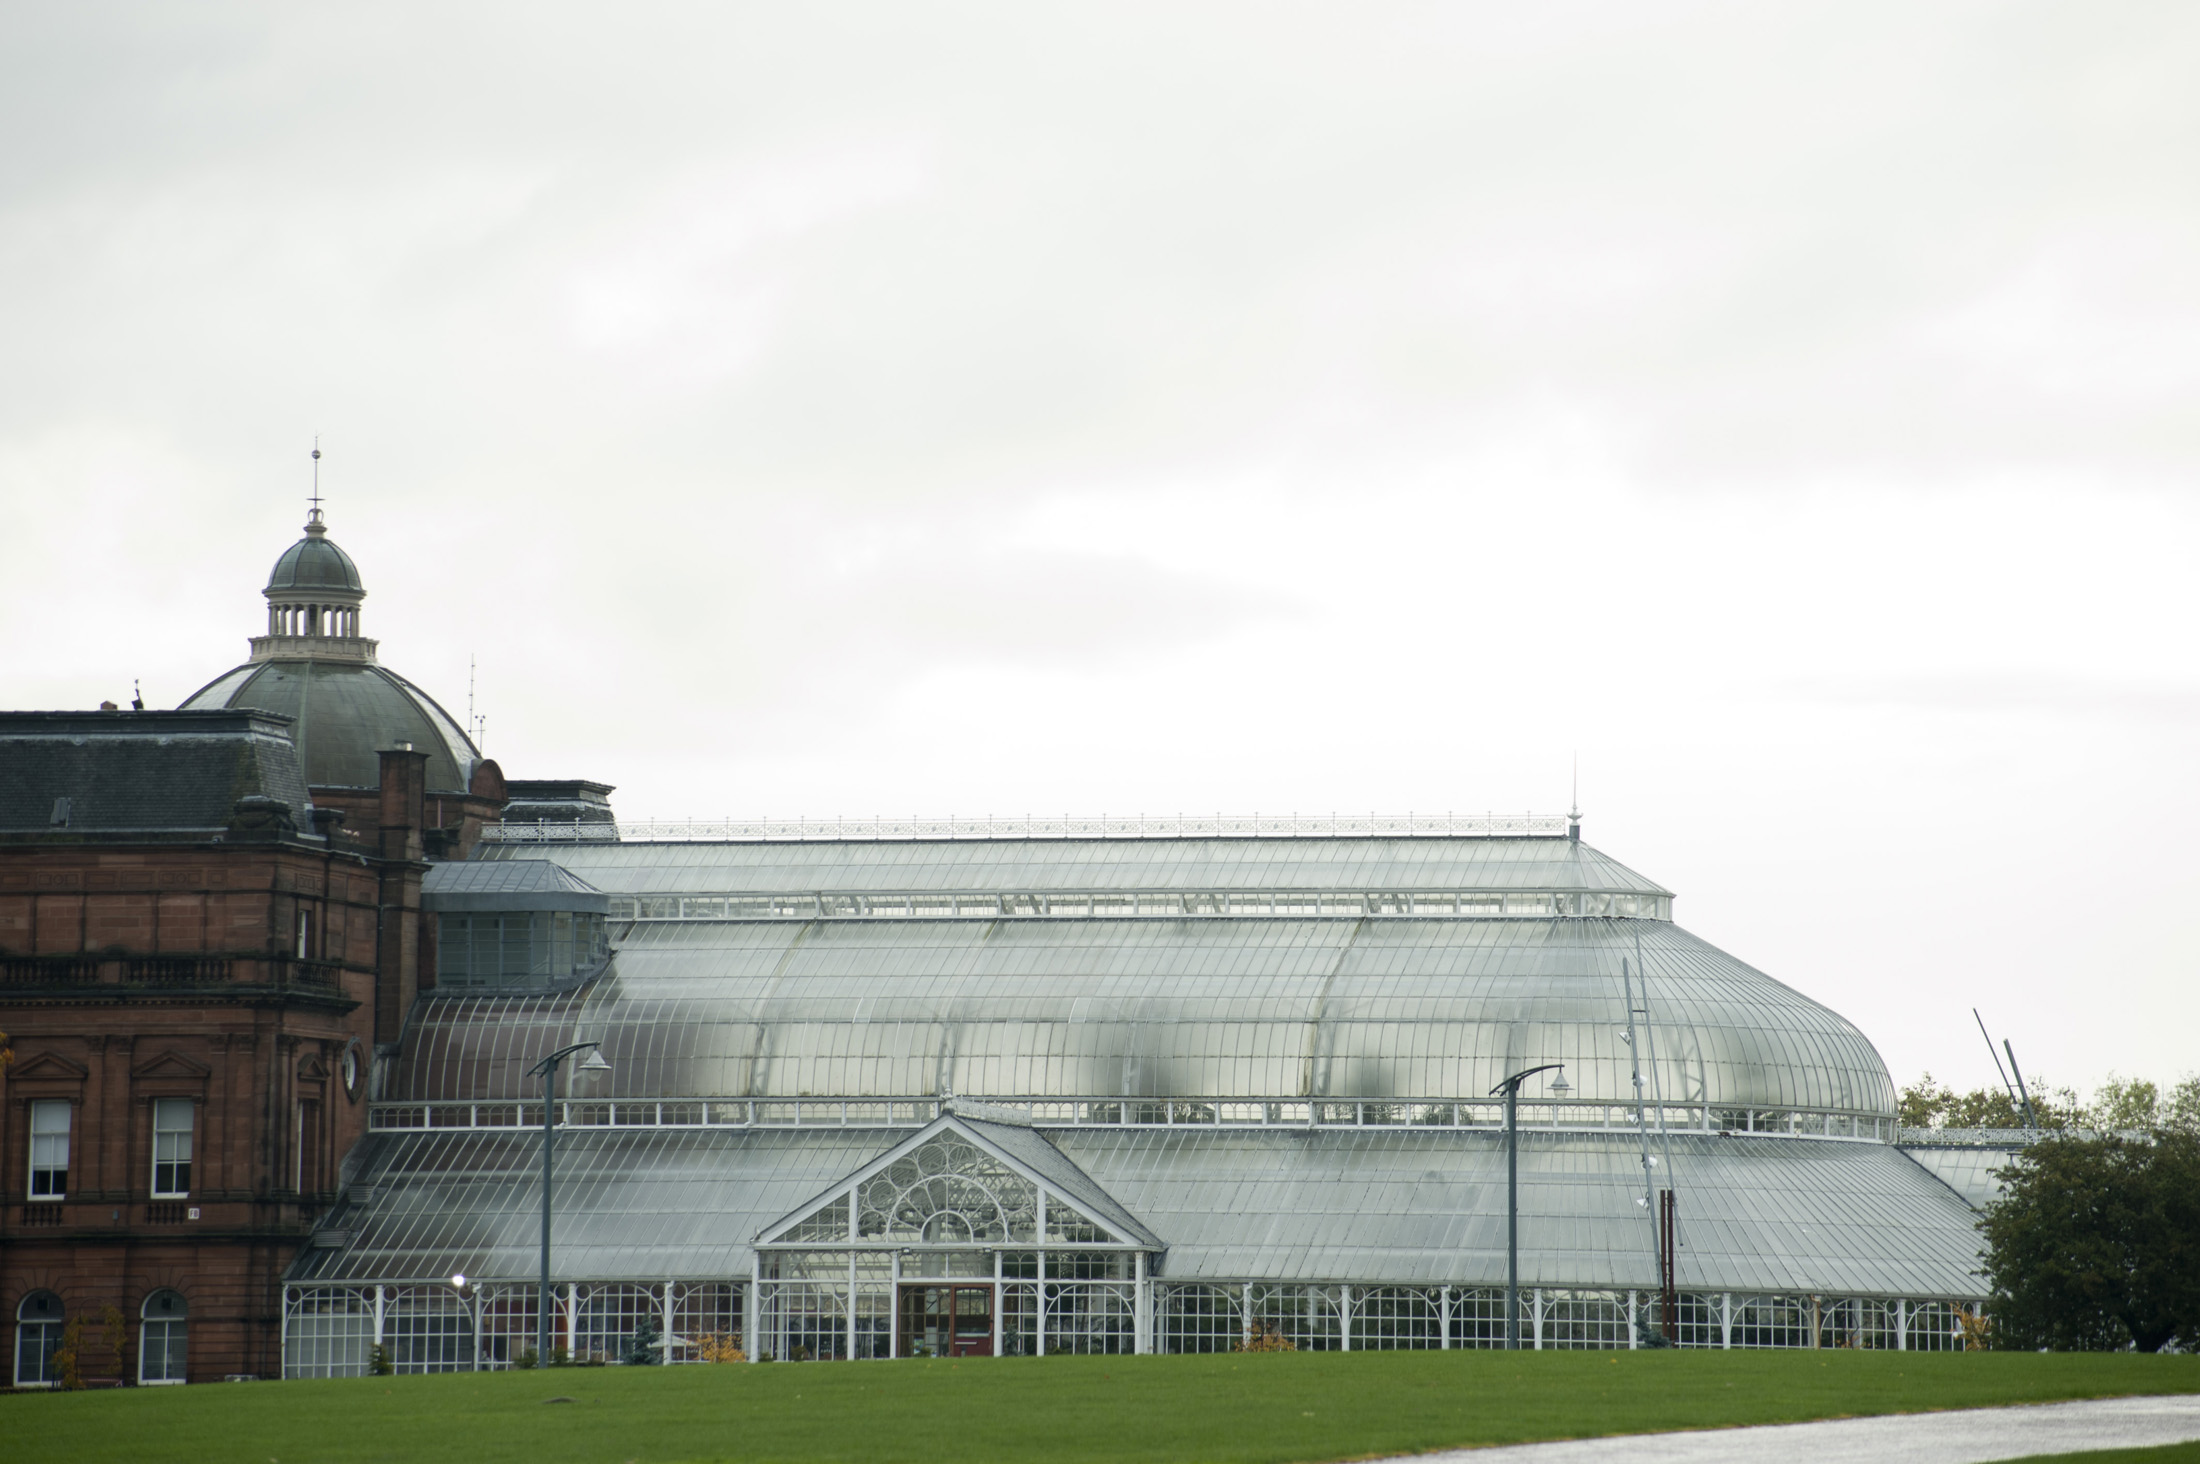 Scenic view of the exterior of the People Palace Winter Garden in Glasgow, a large historical Victorian glasshouse which now houses a museum